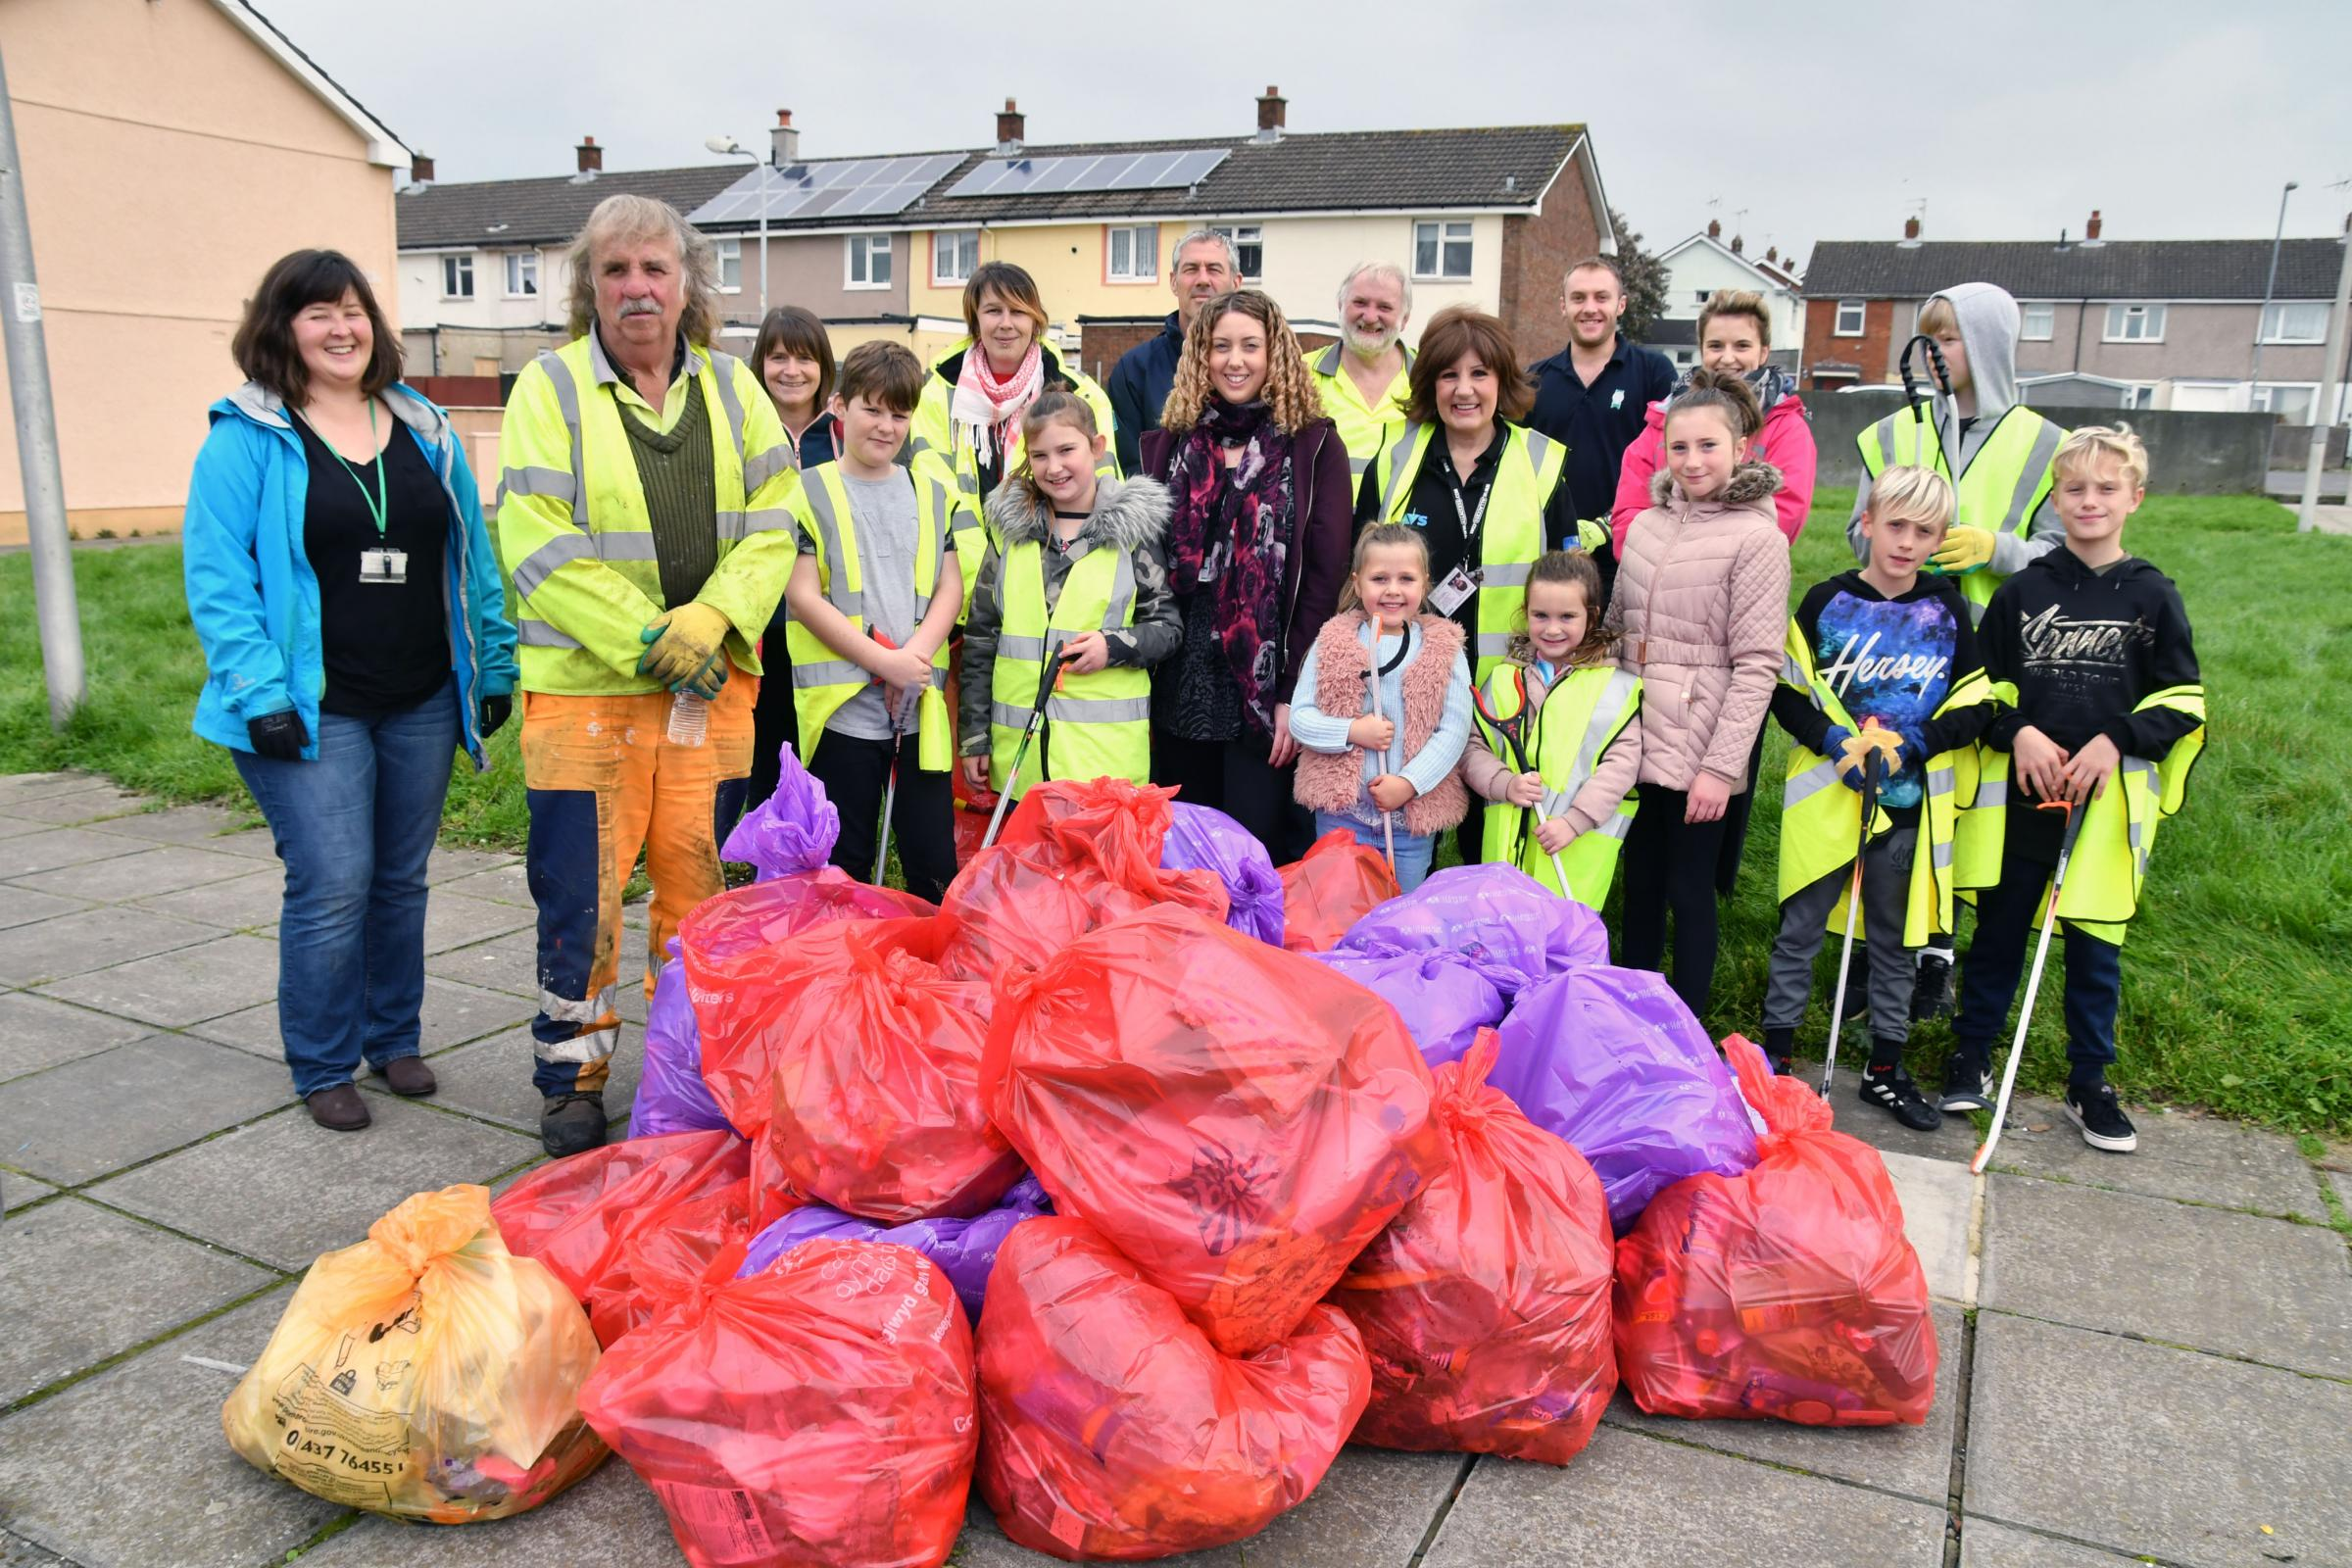 Residents were among those who helped clean-up Monkton estate. With them are several bags of recyclable material awaiting collection.